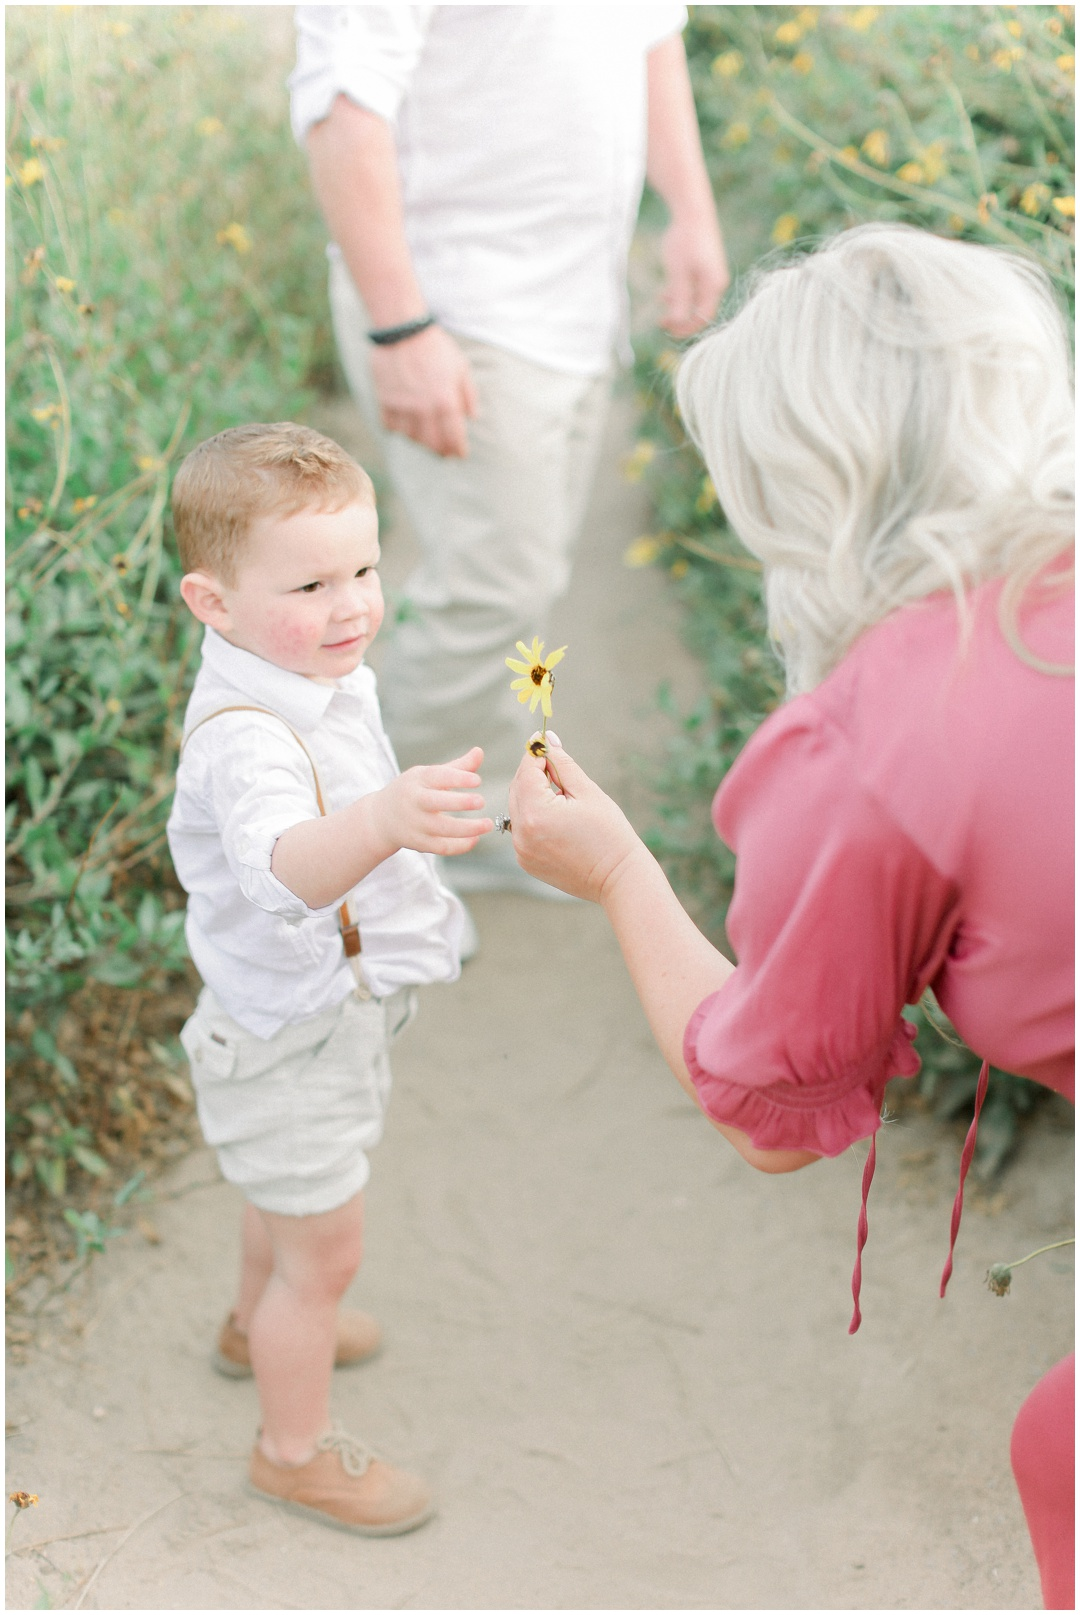 Newport_Beach_Newborn_Light_Airy_Natural_Photographer_Newport_Beach_Photographer_Orange_County_Family_Photographer_Cori_Kleckner_Photography_Newport_Beach_Photographer_Maternity_kole_calhoun56_kole_calhoun_Jennifer_Calhoun_Knox_Calhoun_3739.jpg